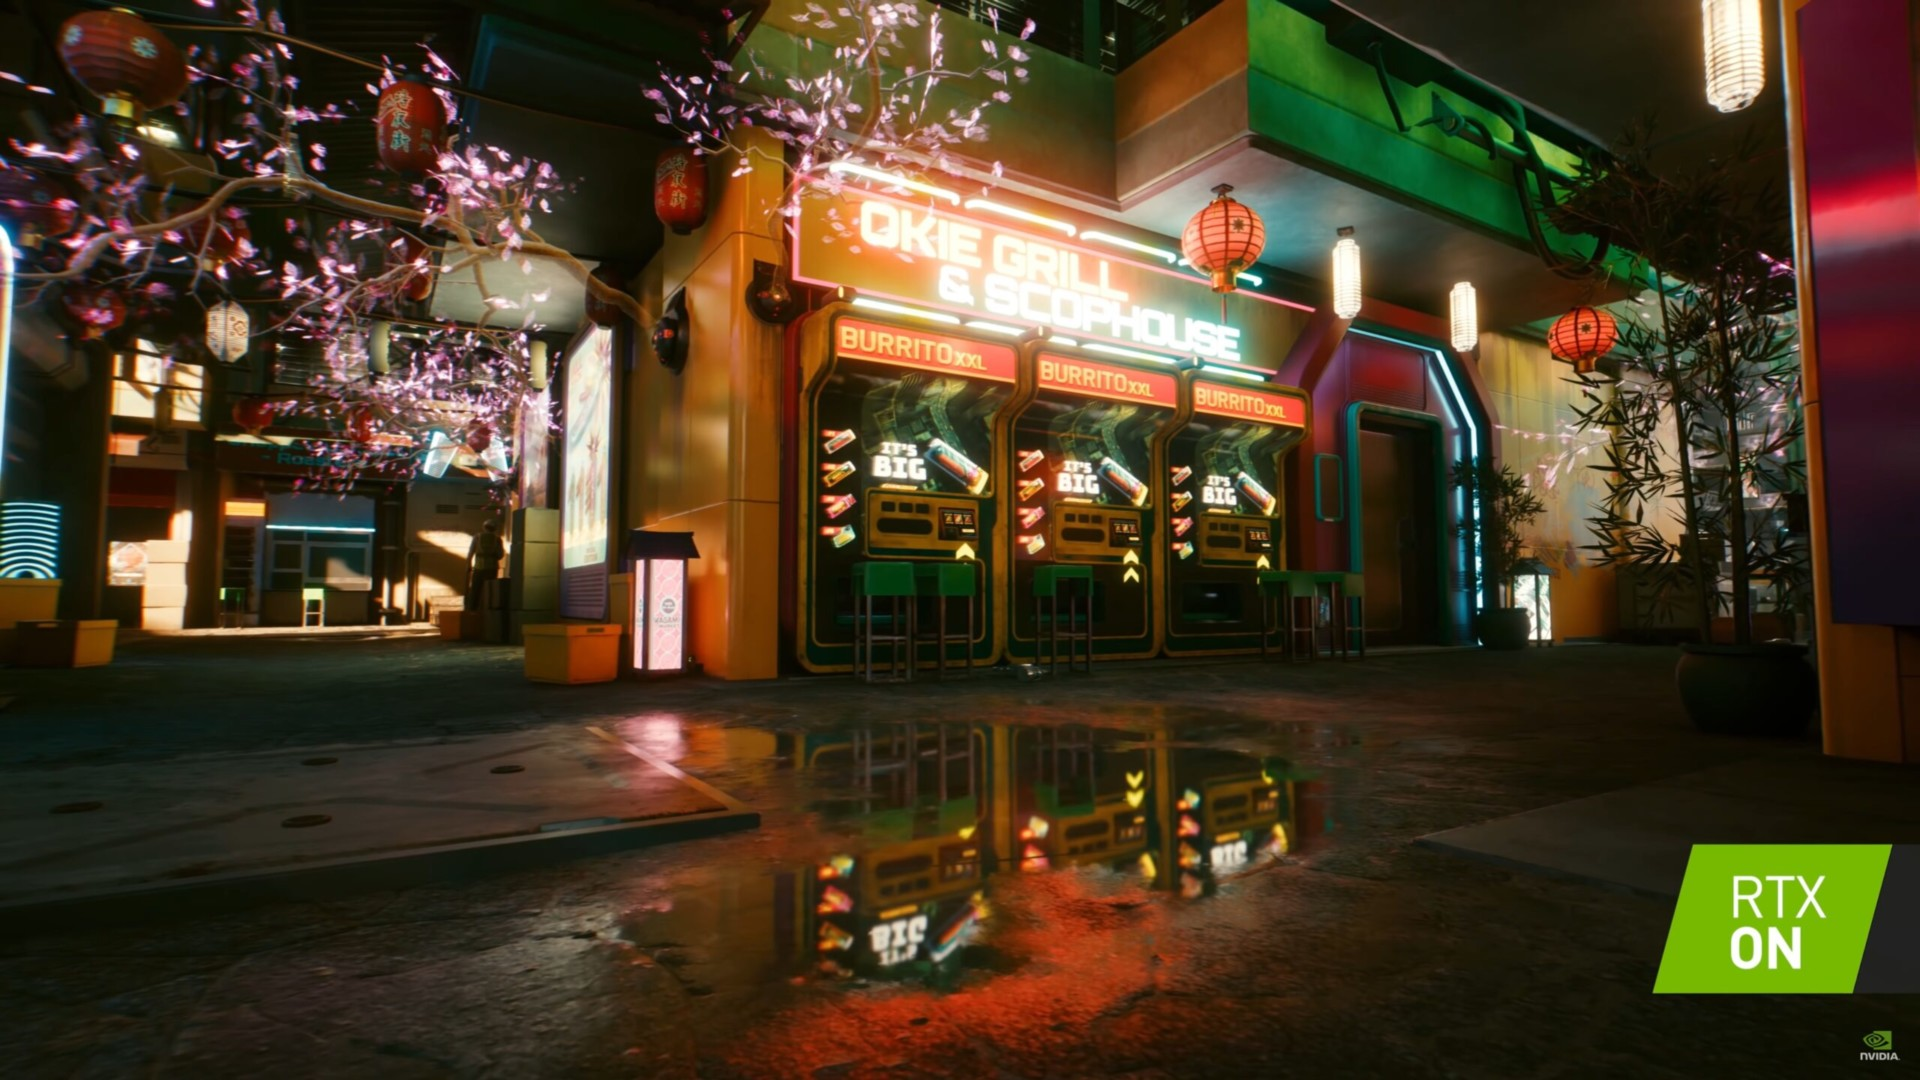 Nvidia releases driver for Cyberpunk 2077, along with performance details